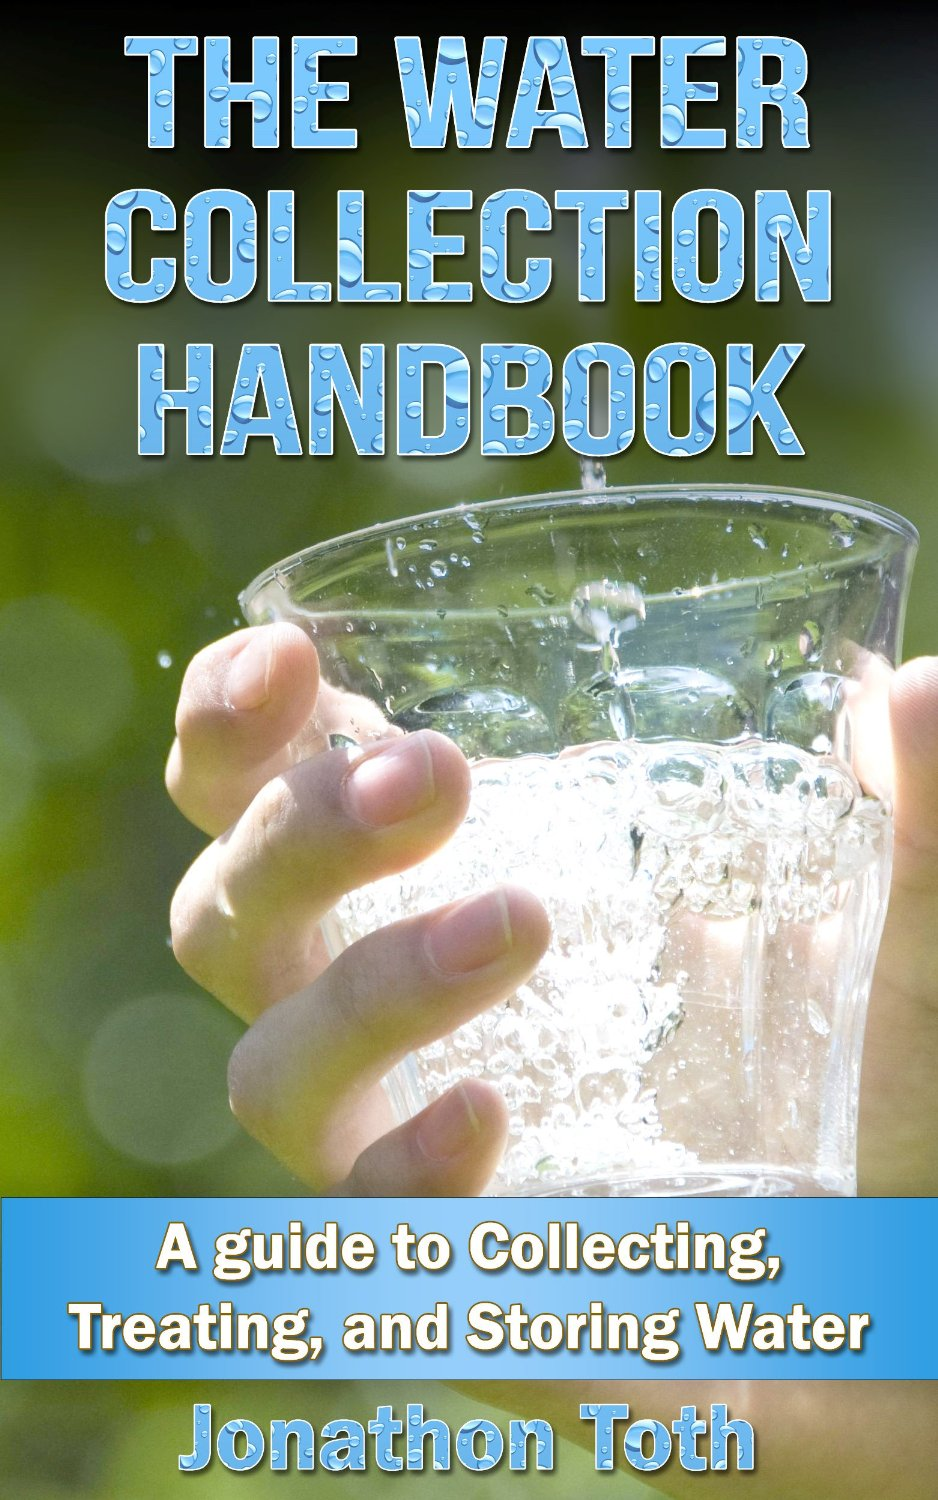 The Water Collection Handbook - A Guide To Collecting, Treating, and Storing Water